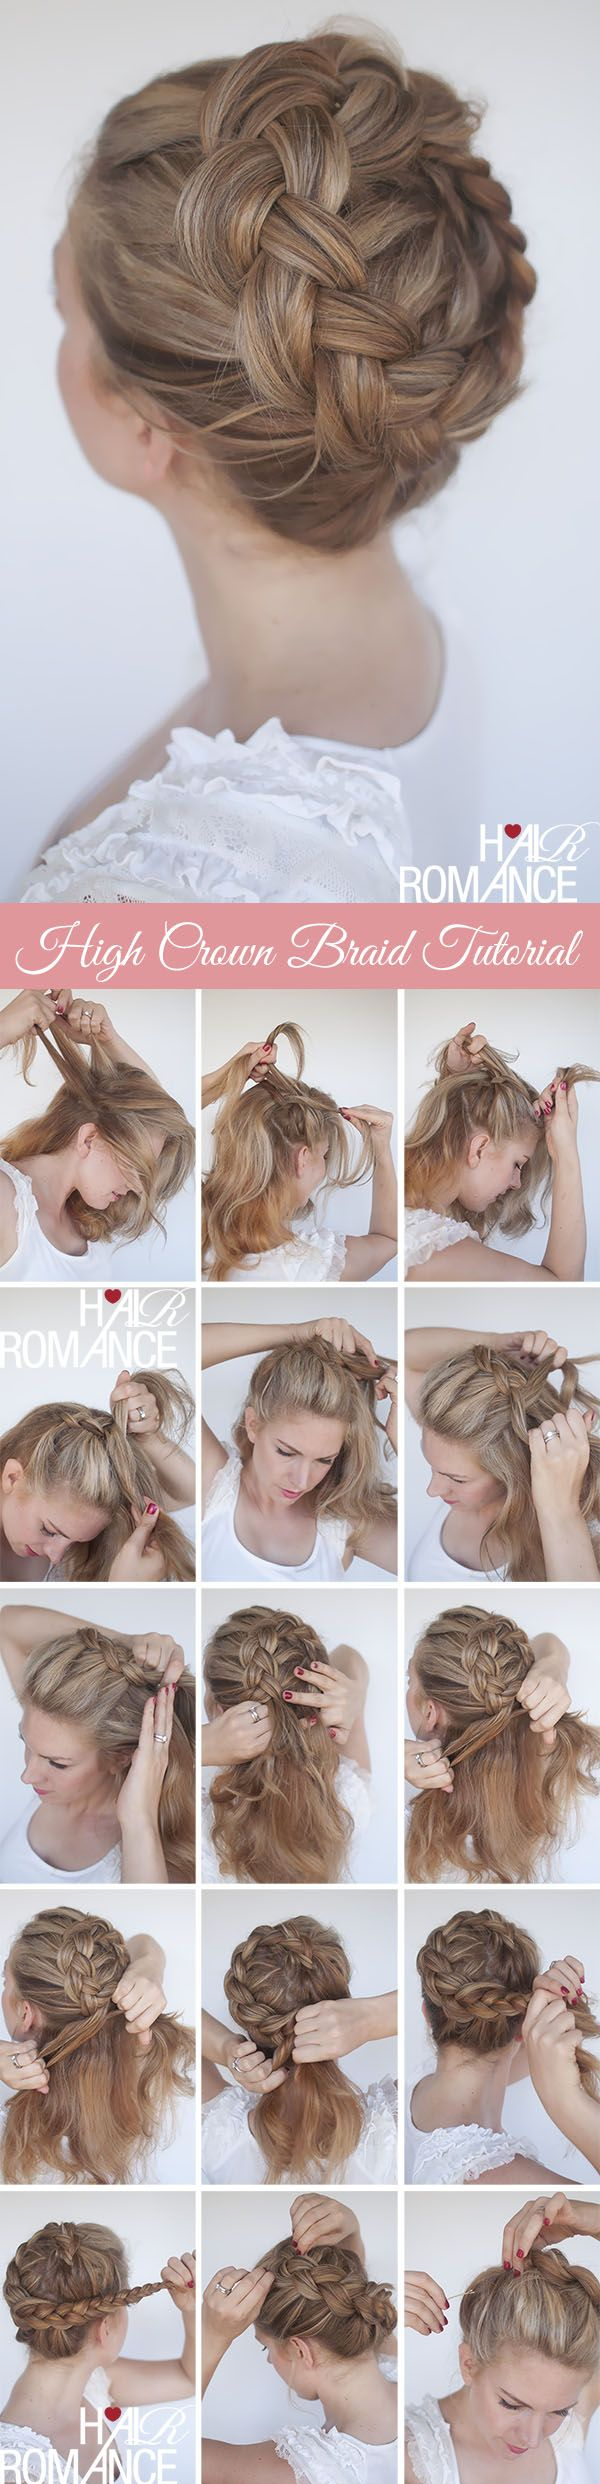 Hair Romance - braided crown hairstyle tutorial  #coiffure #chignon #tresses #mariée #mariage #wedding